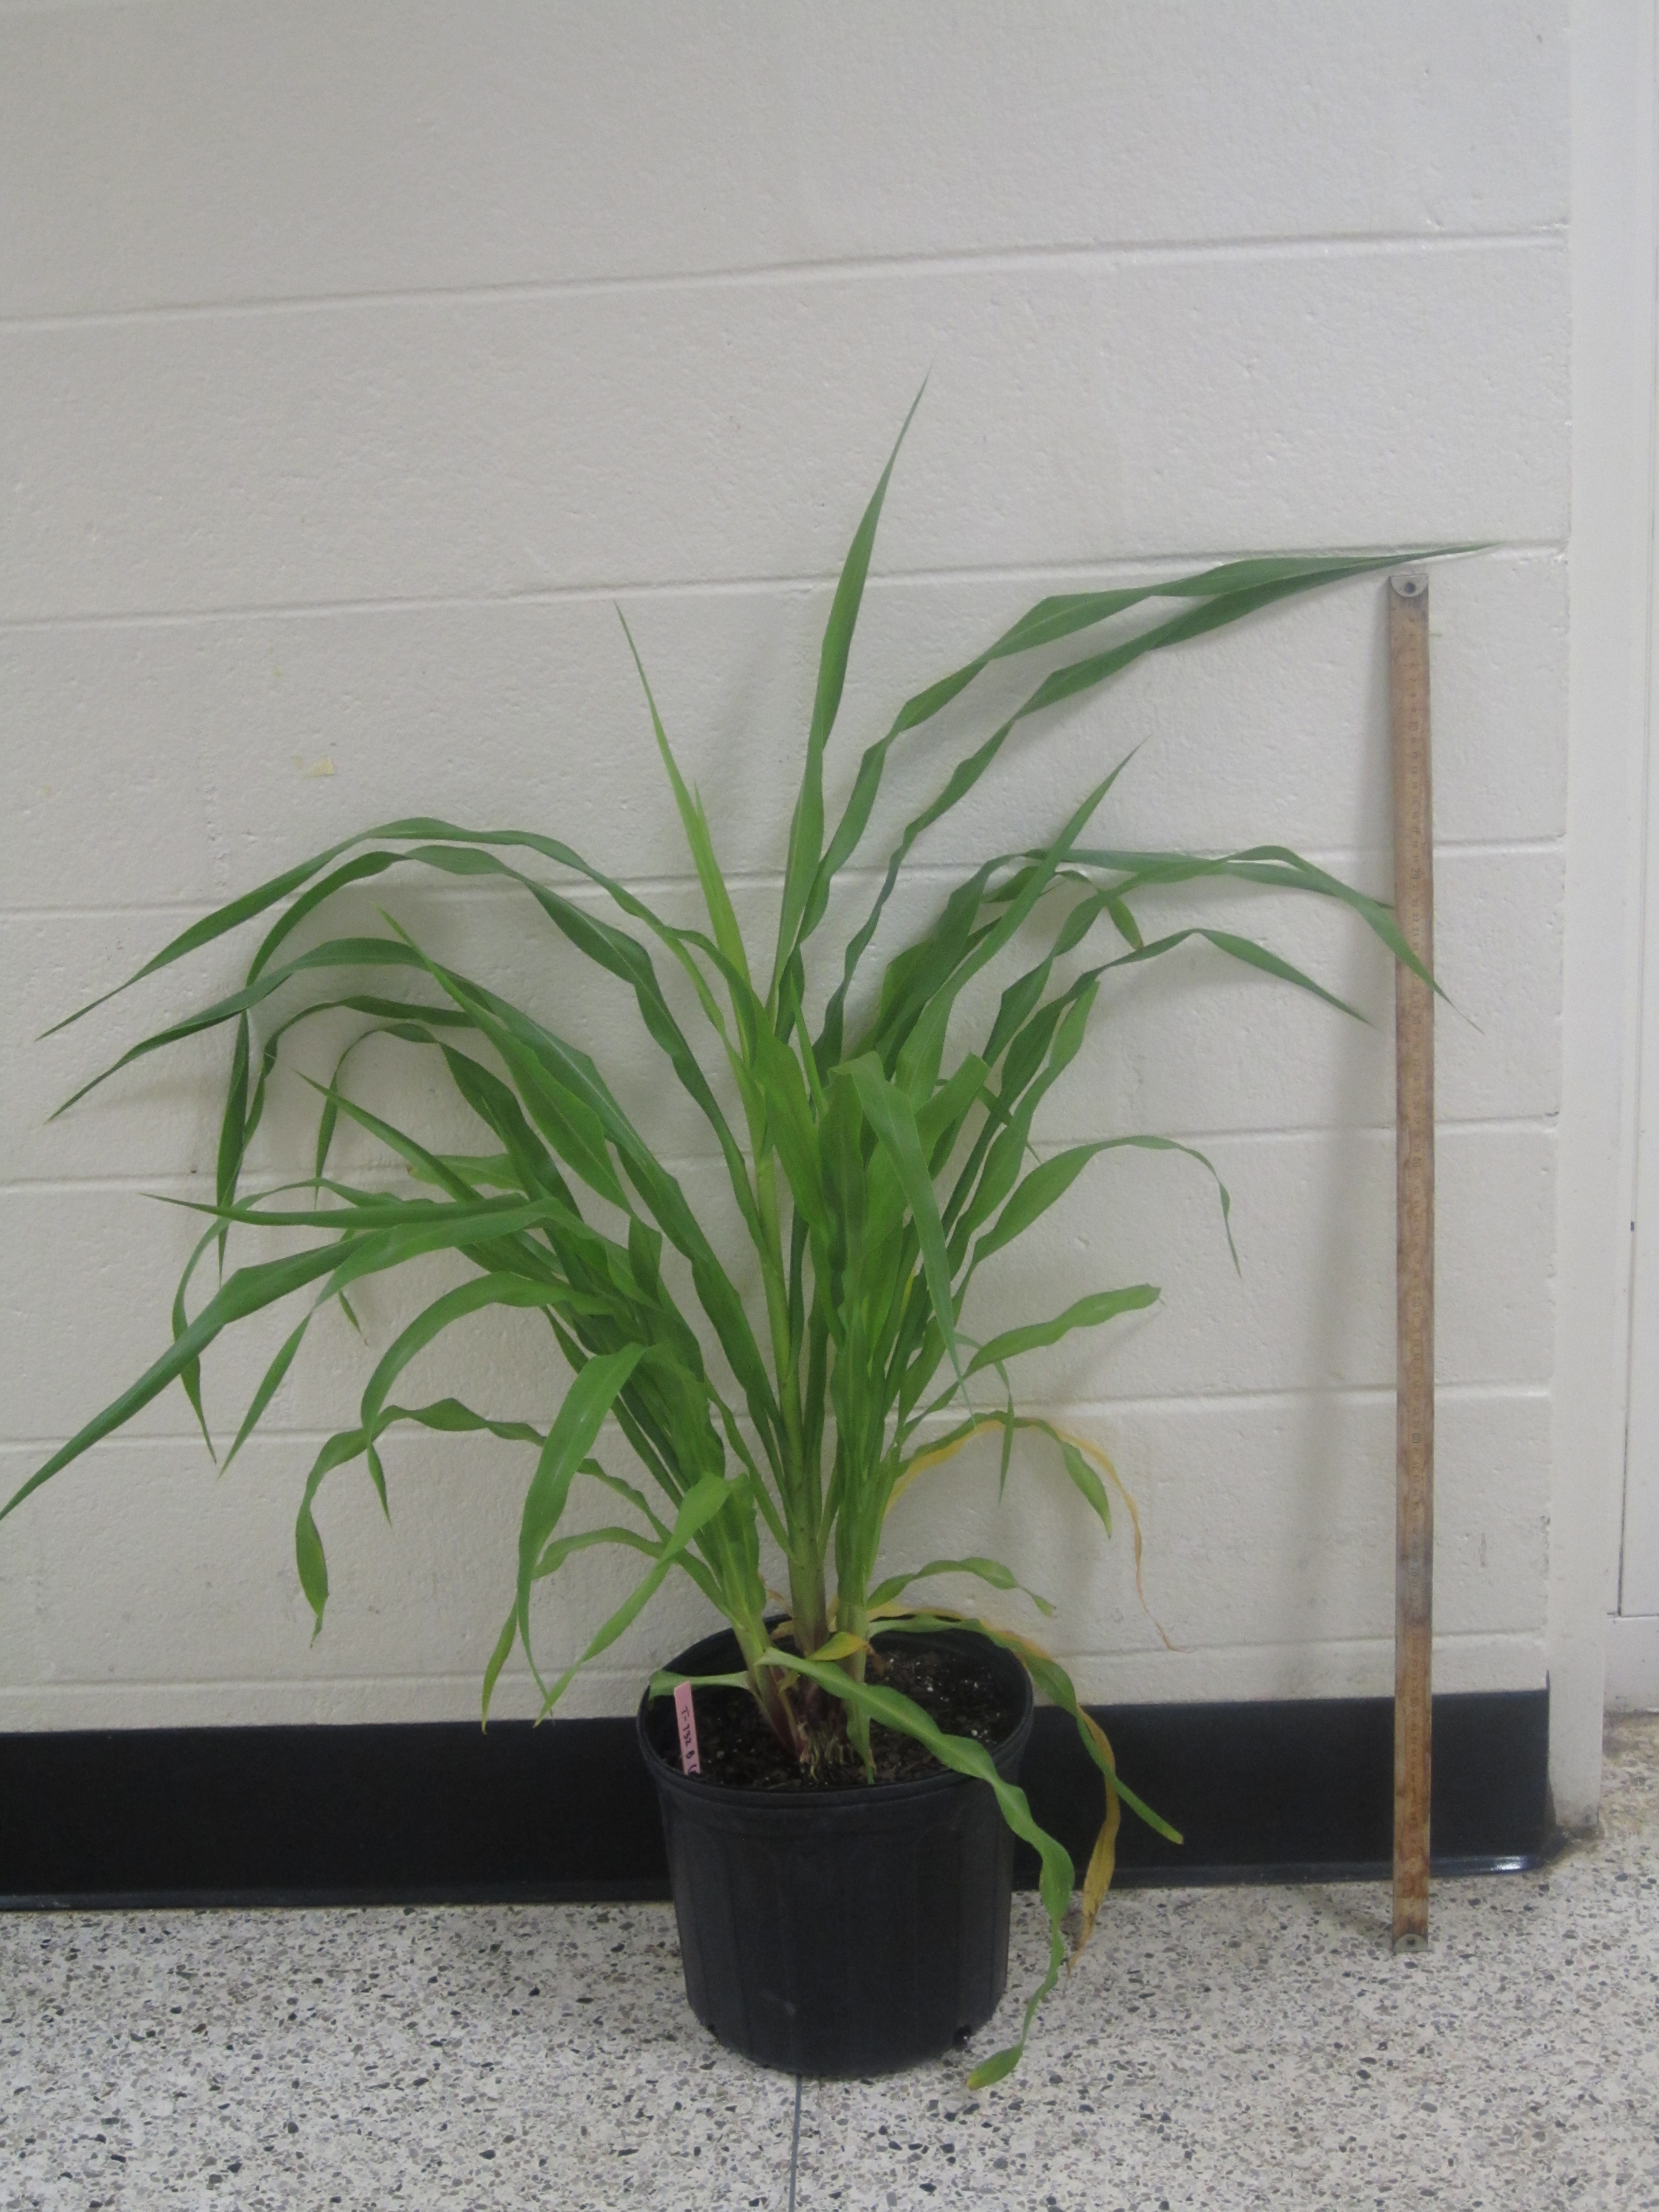 UGA researchers have identified the gene that contributes to the short stature of dwarf pearl millet.